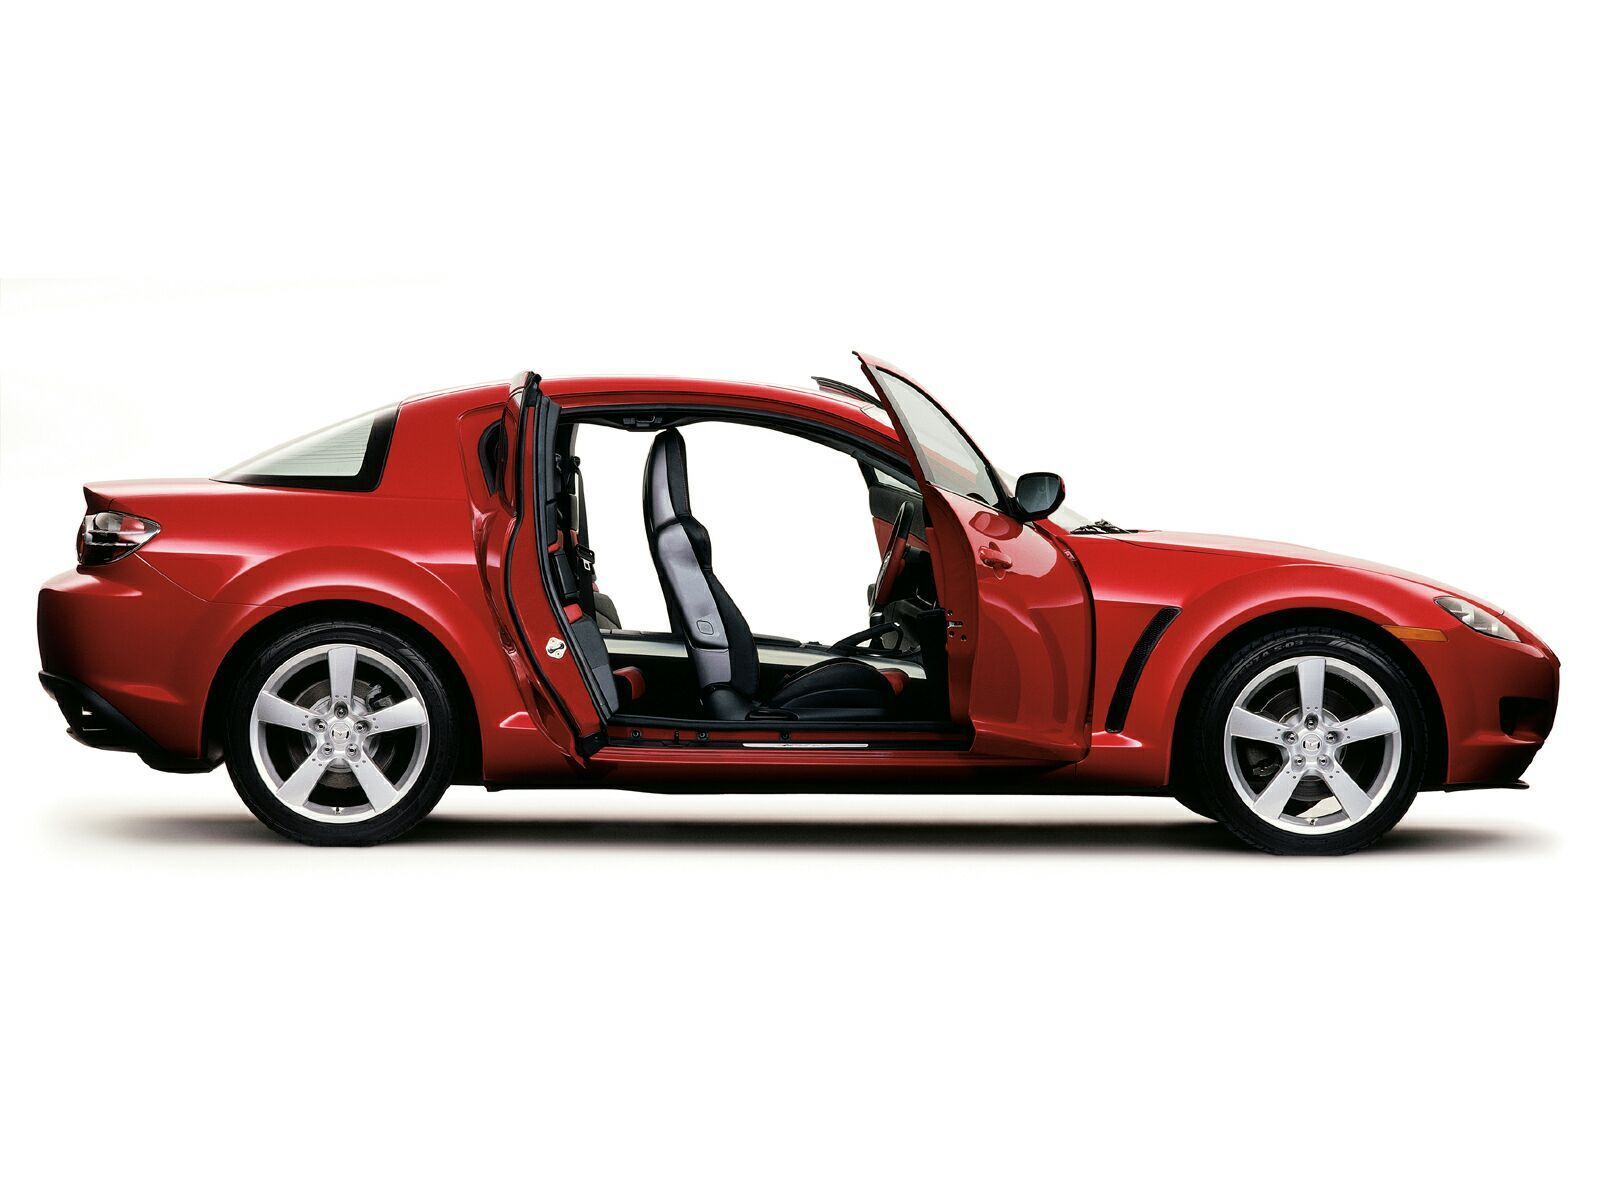 2005 Mazda Rx 8 Top Speed Tribute Frame Diagram Free Engine Image For User Manual